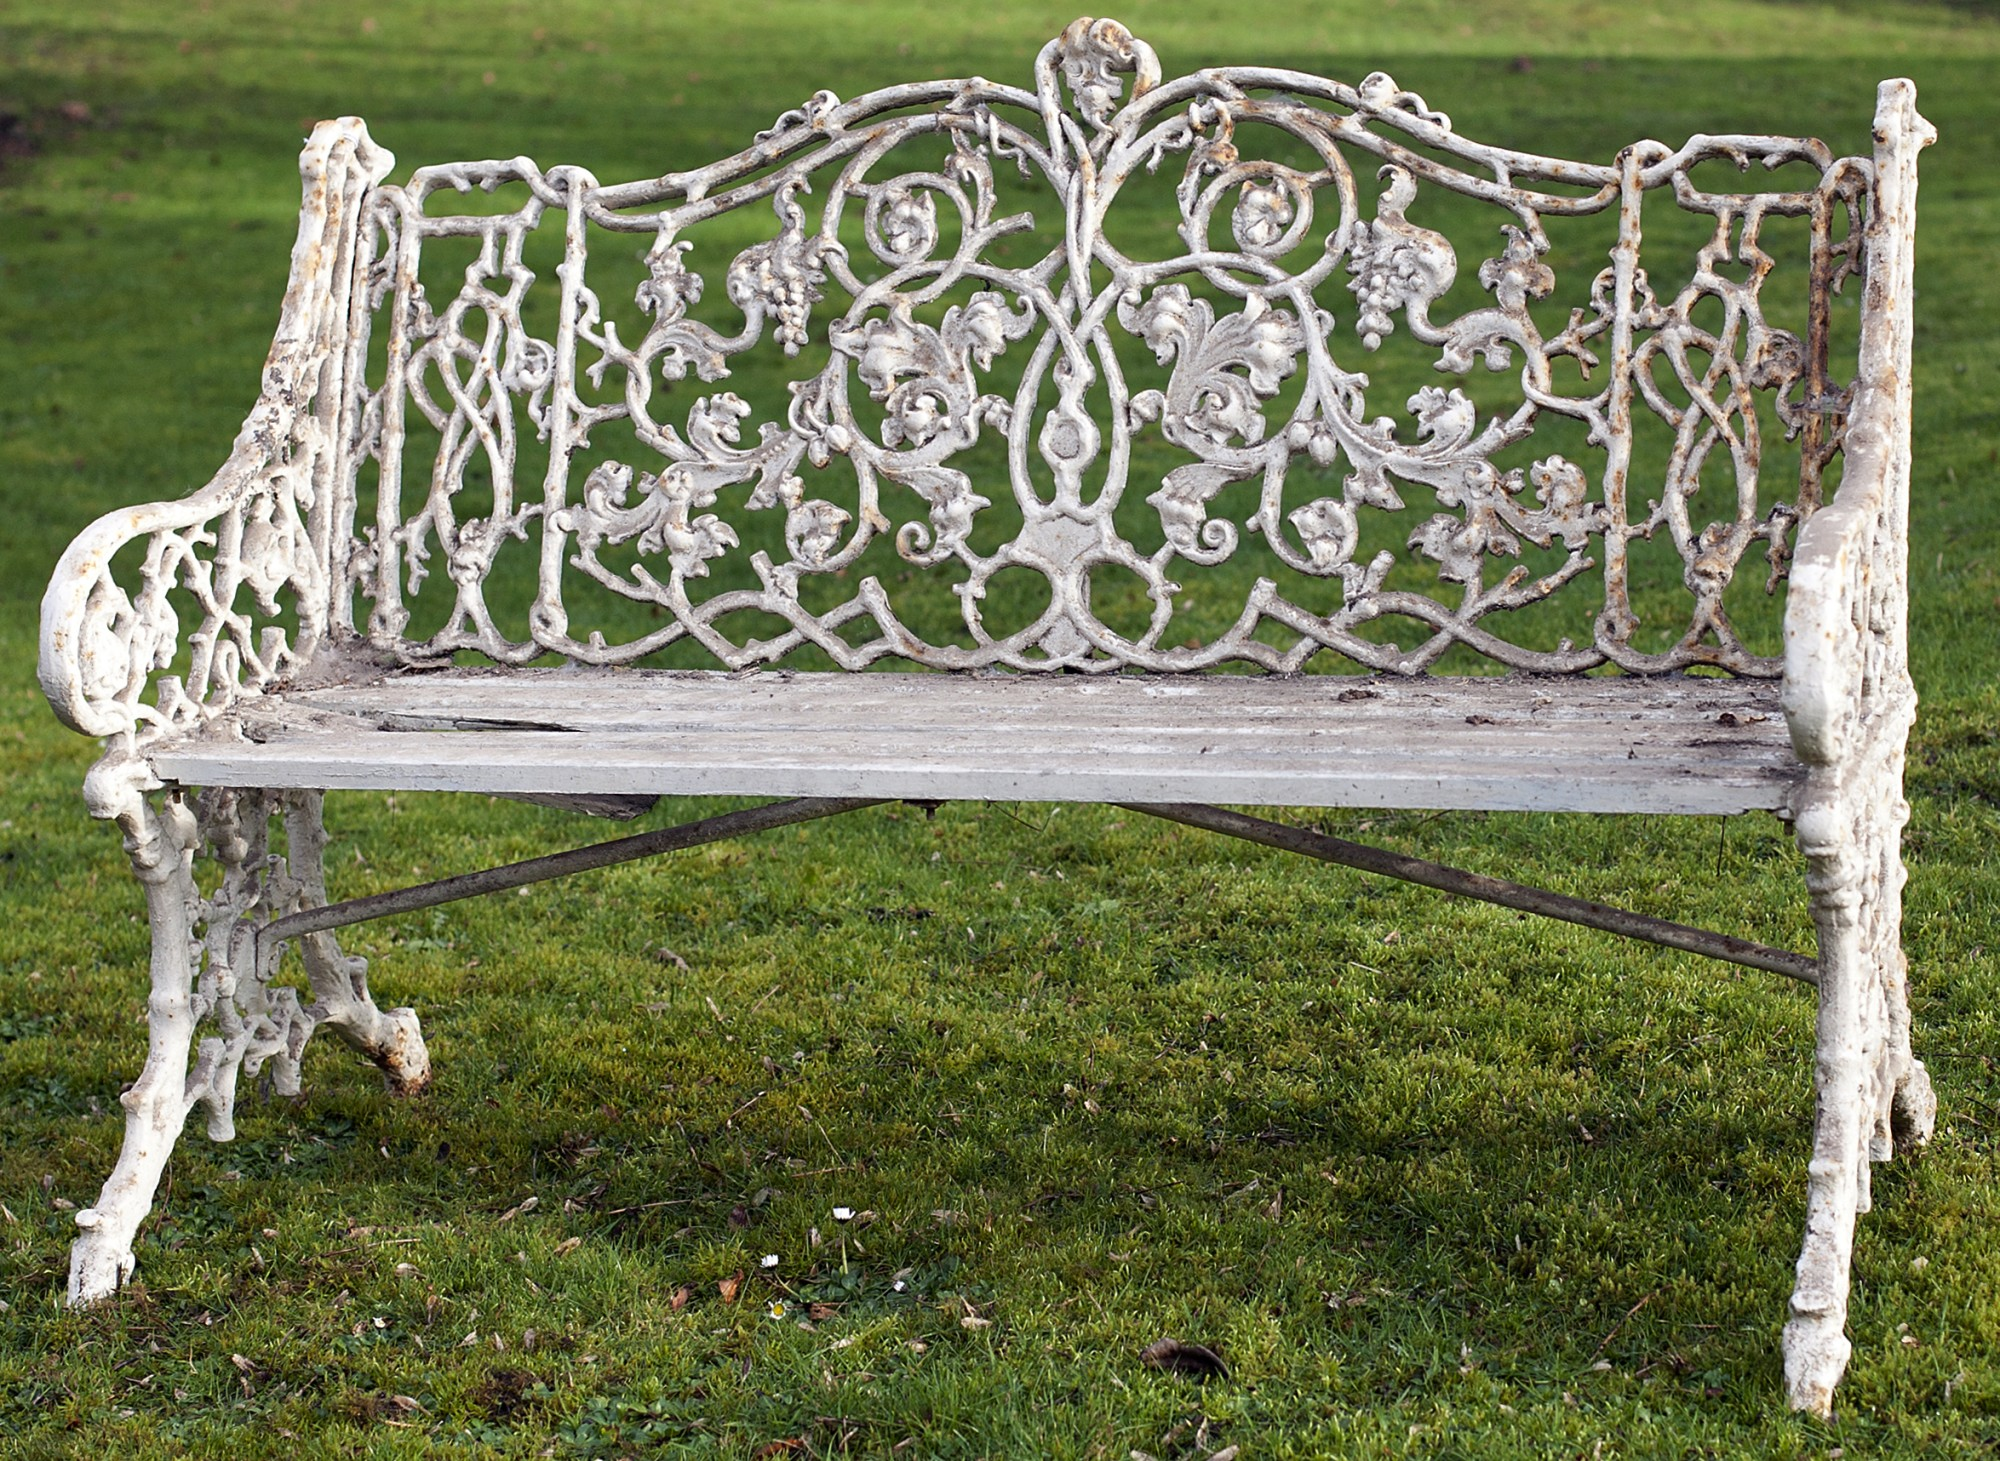 Lot 51 - A rare Victorian period Garden Seat, the elaborate pierced metal back and sides decorated with vines